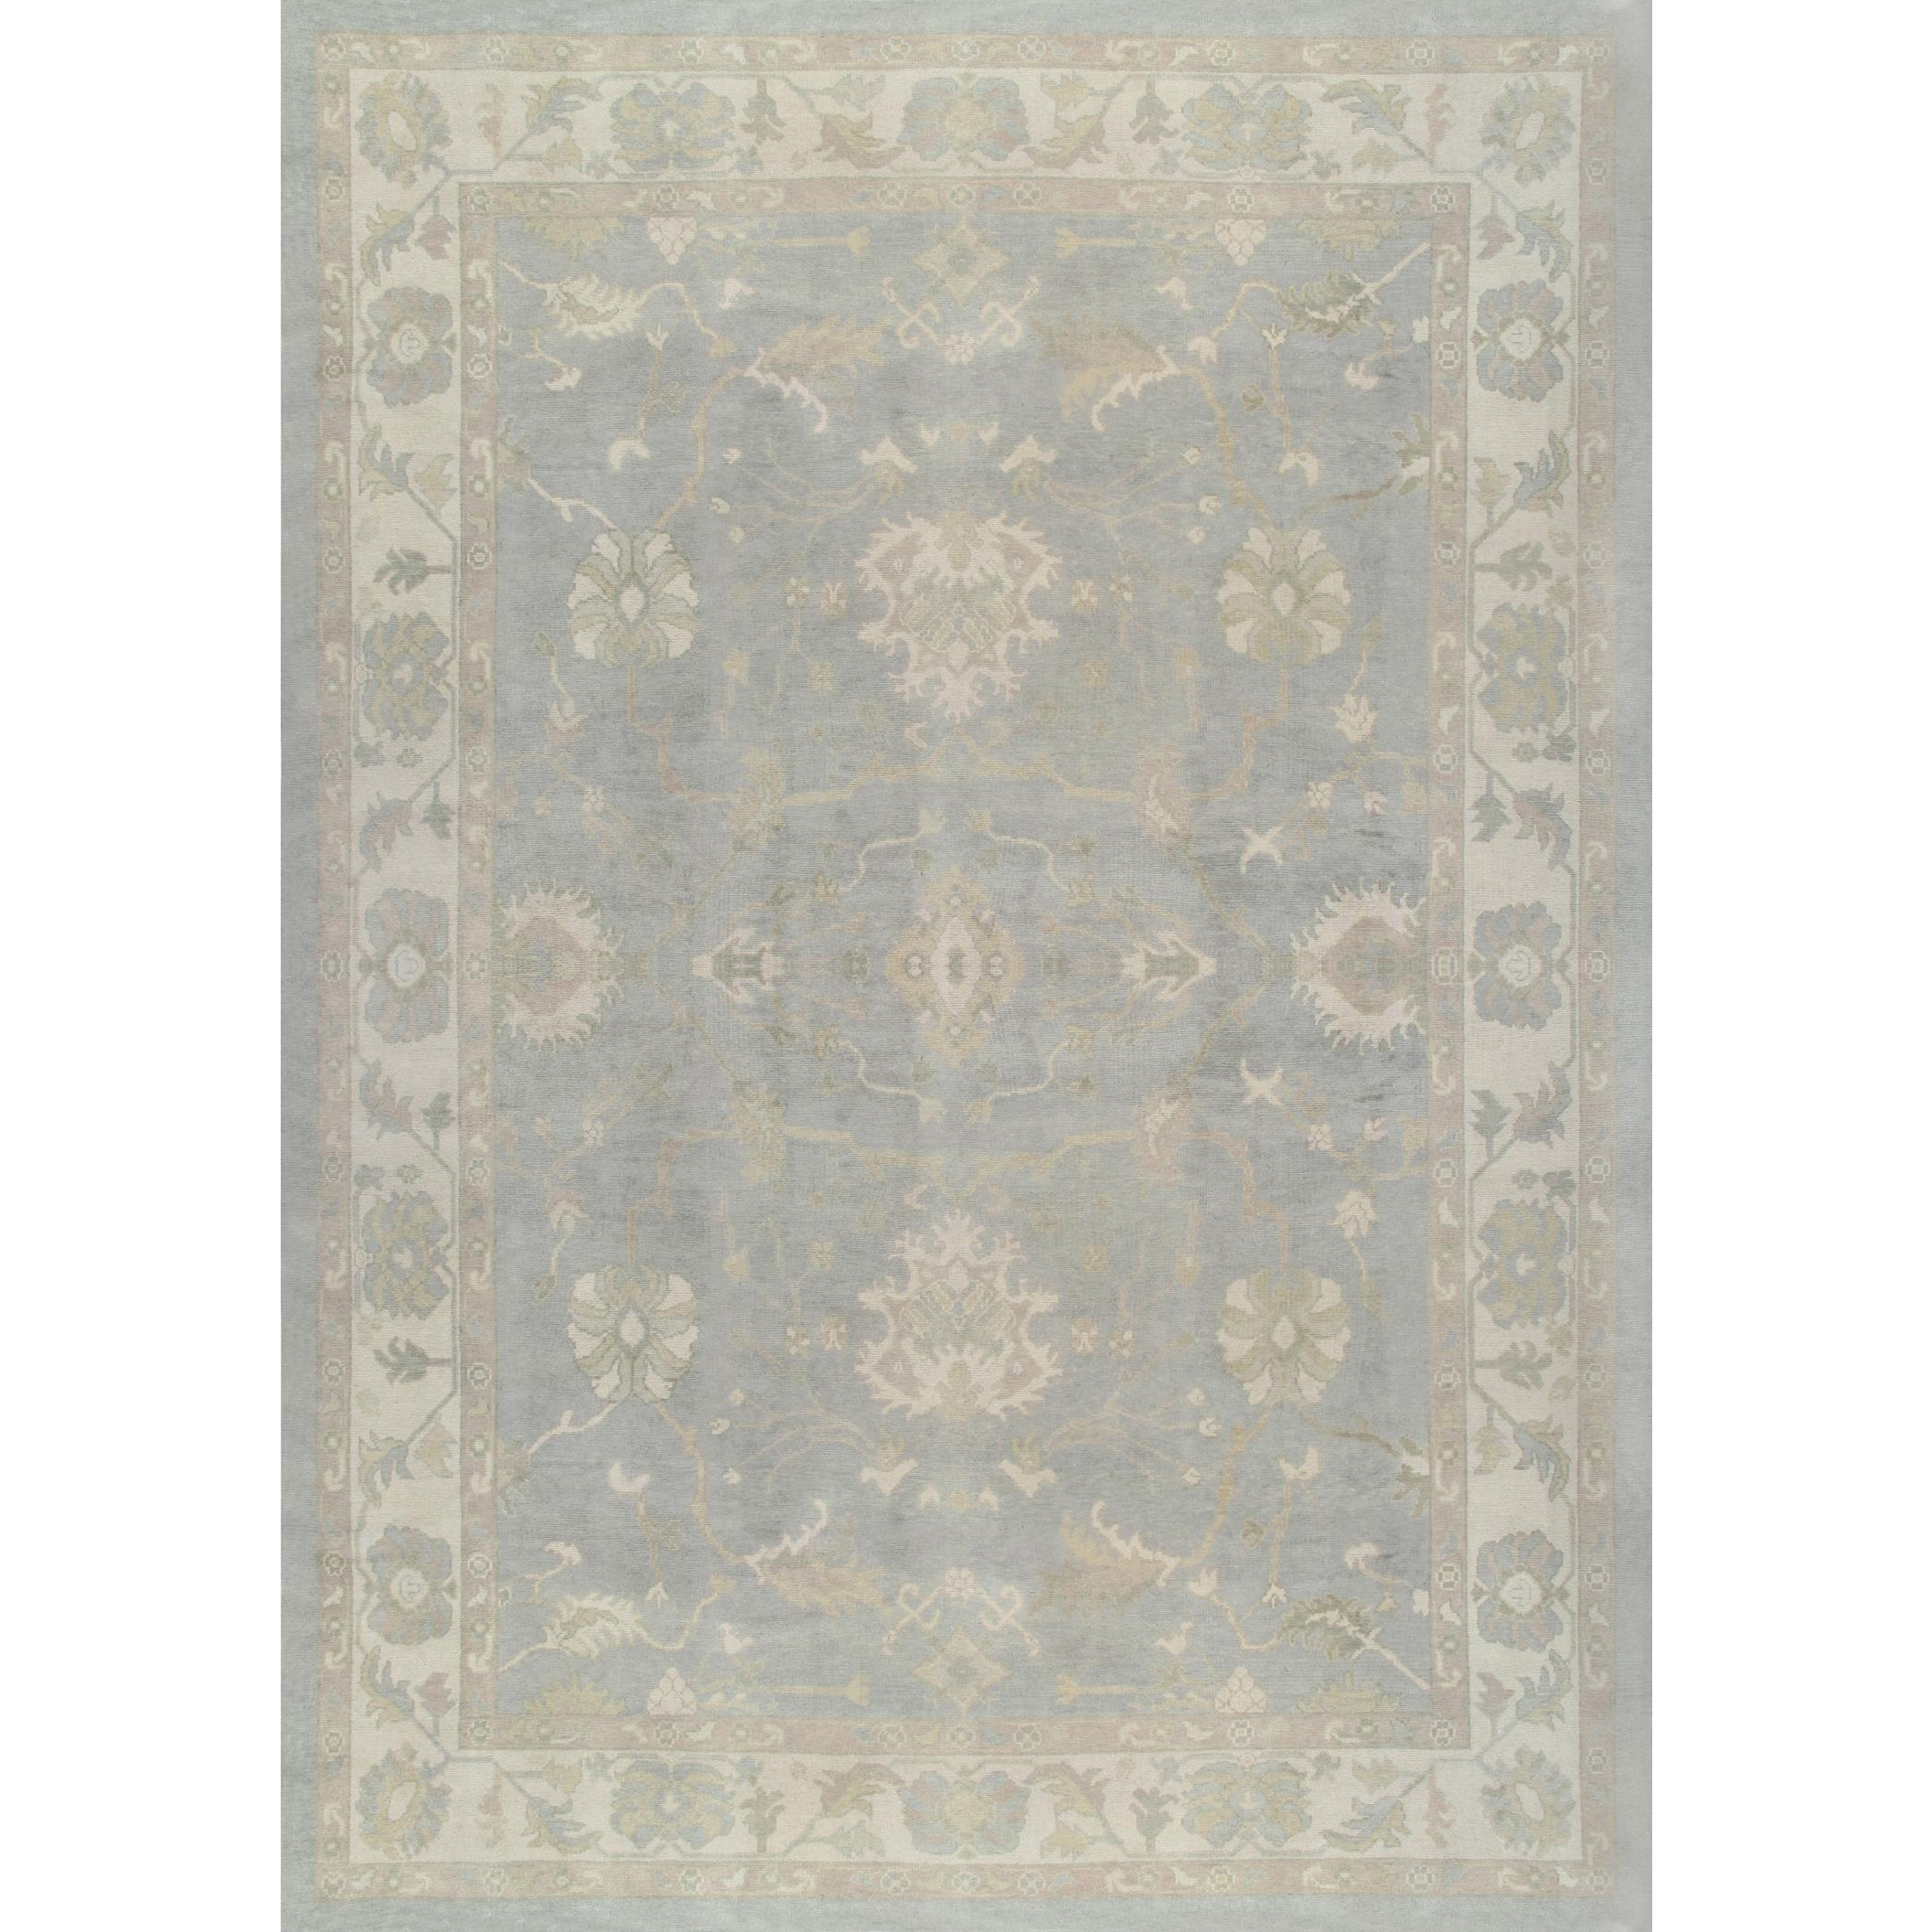 canada area rug alexanderreidross cheap clearance lowes rugs info